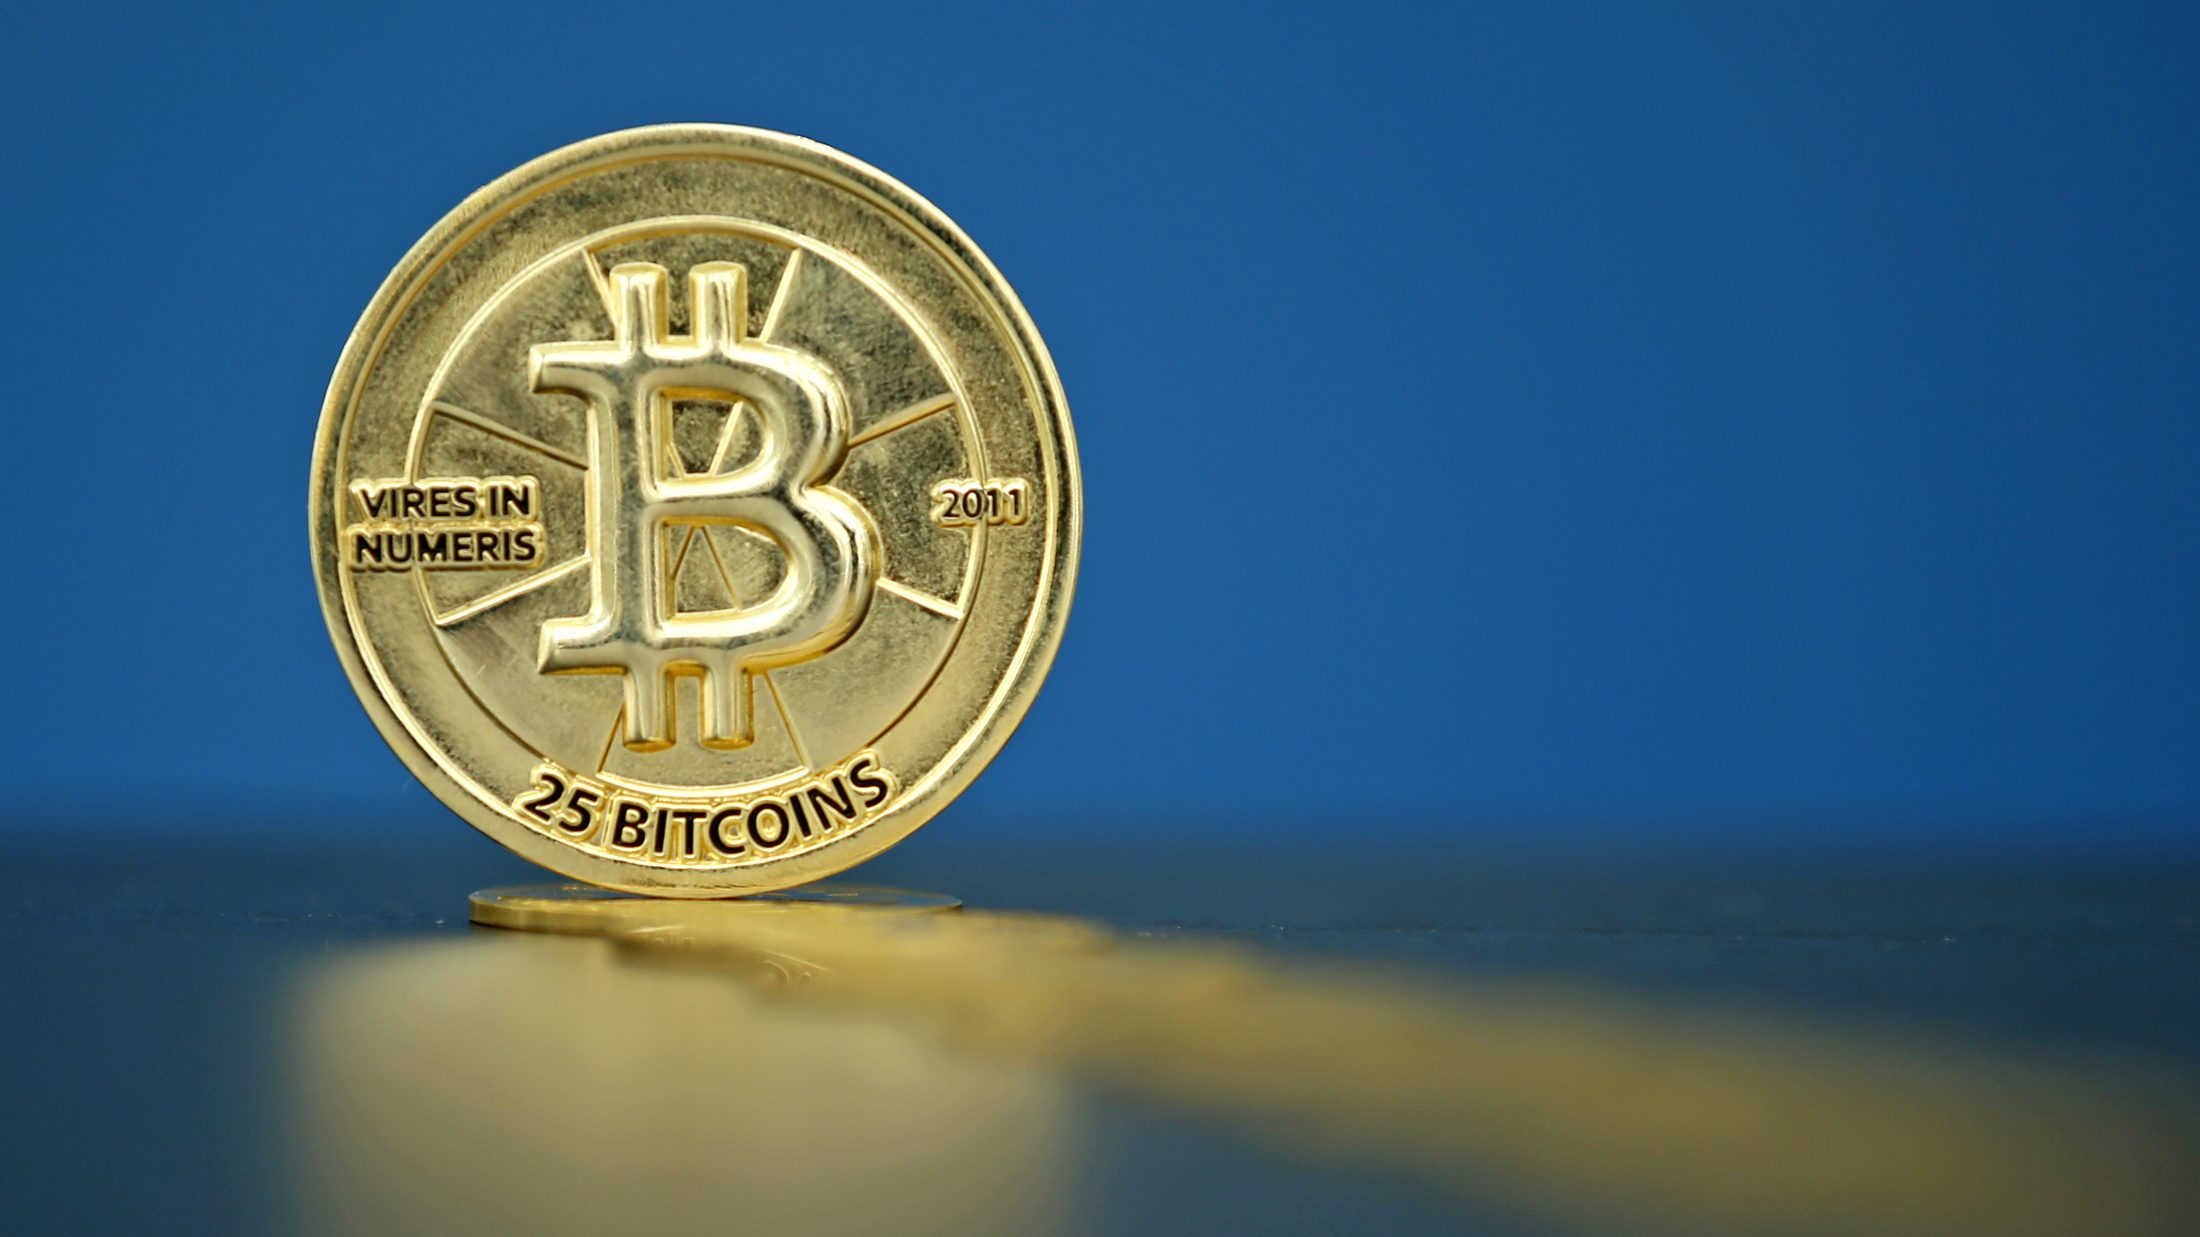 """Bitcoin (virtual currency) coins are seen in an illustration picture taken at La Maison du Bitcoin in Paris, France, May 27, 2015. British authorities have come out in support of digital currencies in the name of promoting financial innovation, while proposing that regulations should be drawn up to prevent their use in crime. But it is technophiles who are leading the drive to make London a real-world hub for trade in web-based """"cryptocurrencies"""", of which bitcoin is the original and still most popular.   Picture taken May 27, 2015."""